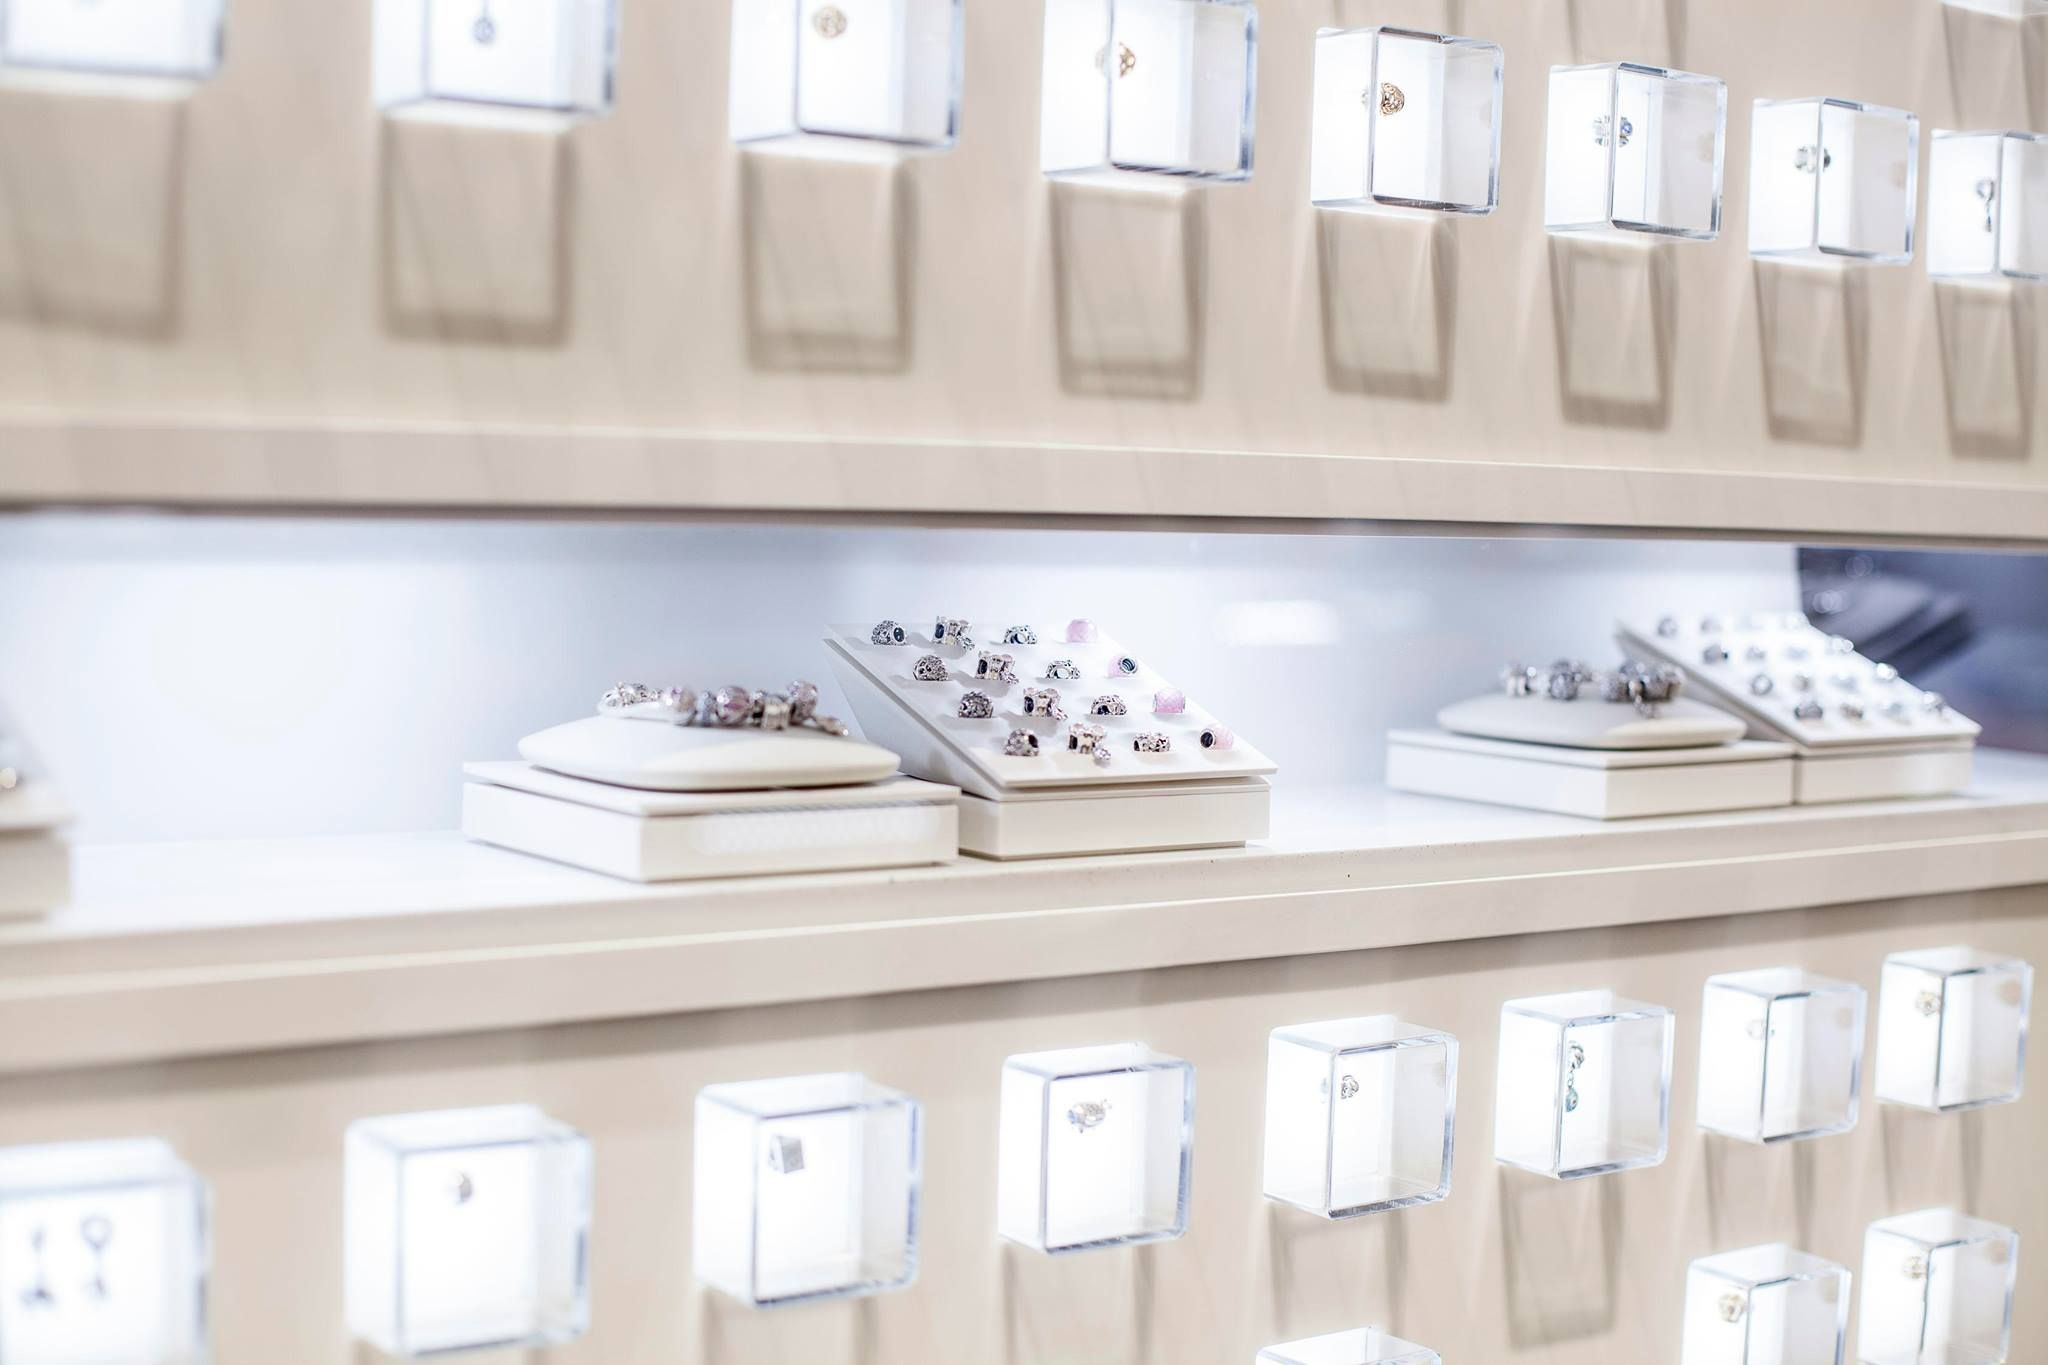 4e4522a29 Retailers should aim at lighting the most important products in their stores.  But if your PANDORA at the Westfield World Trade Center, that's every item!